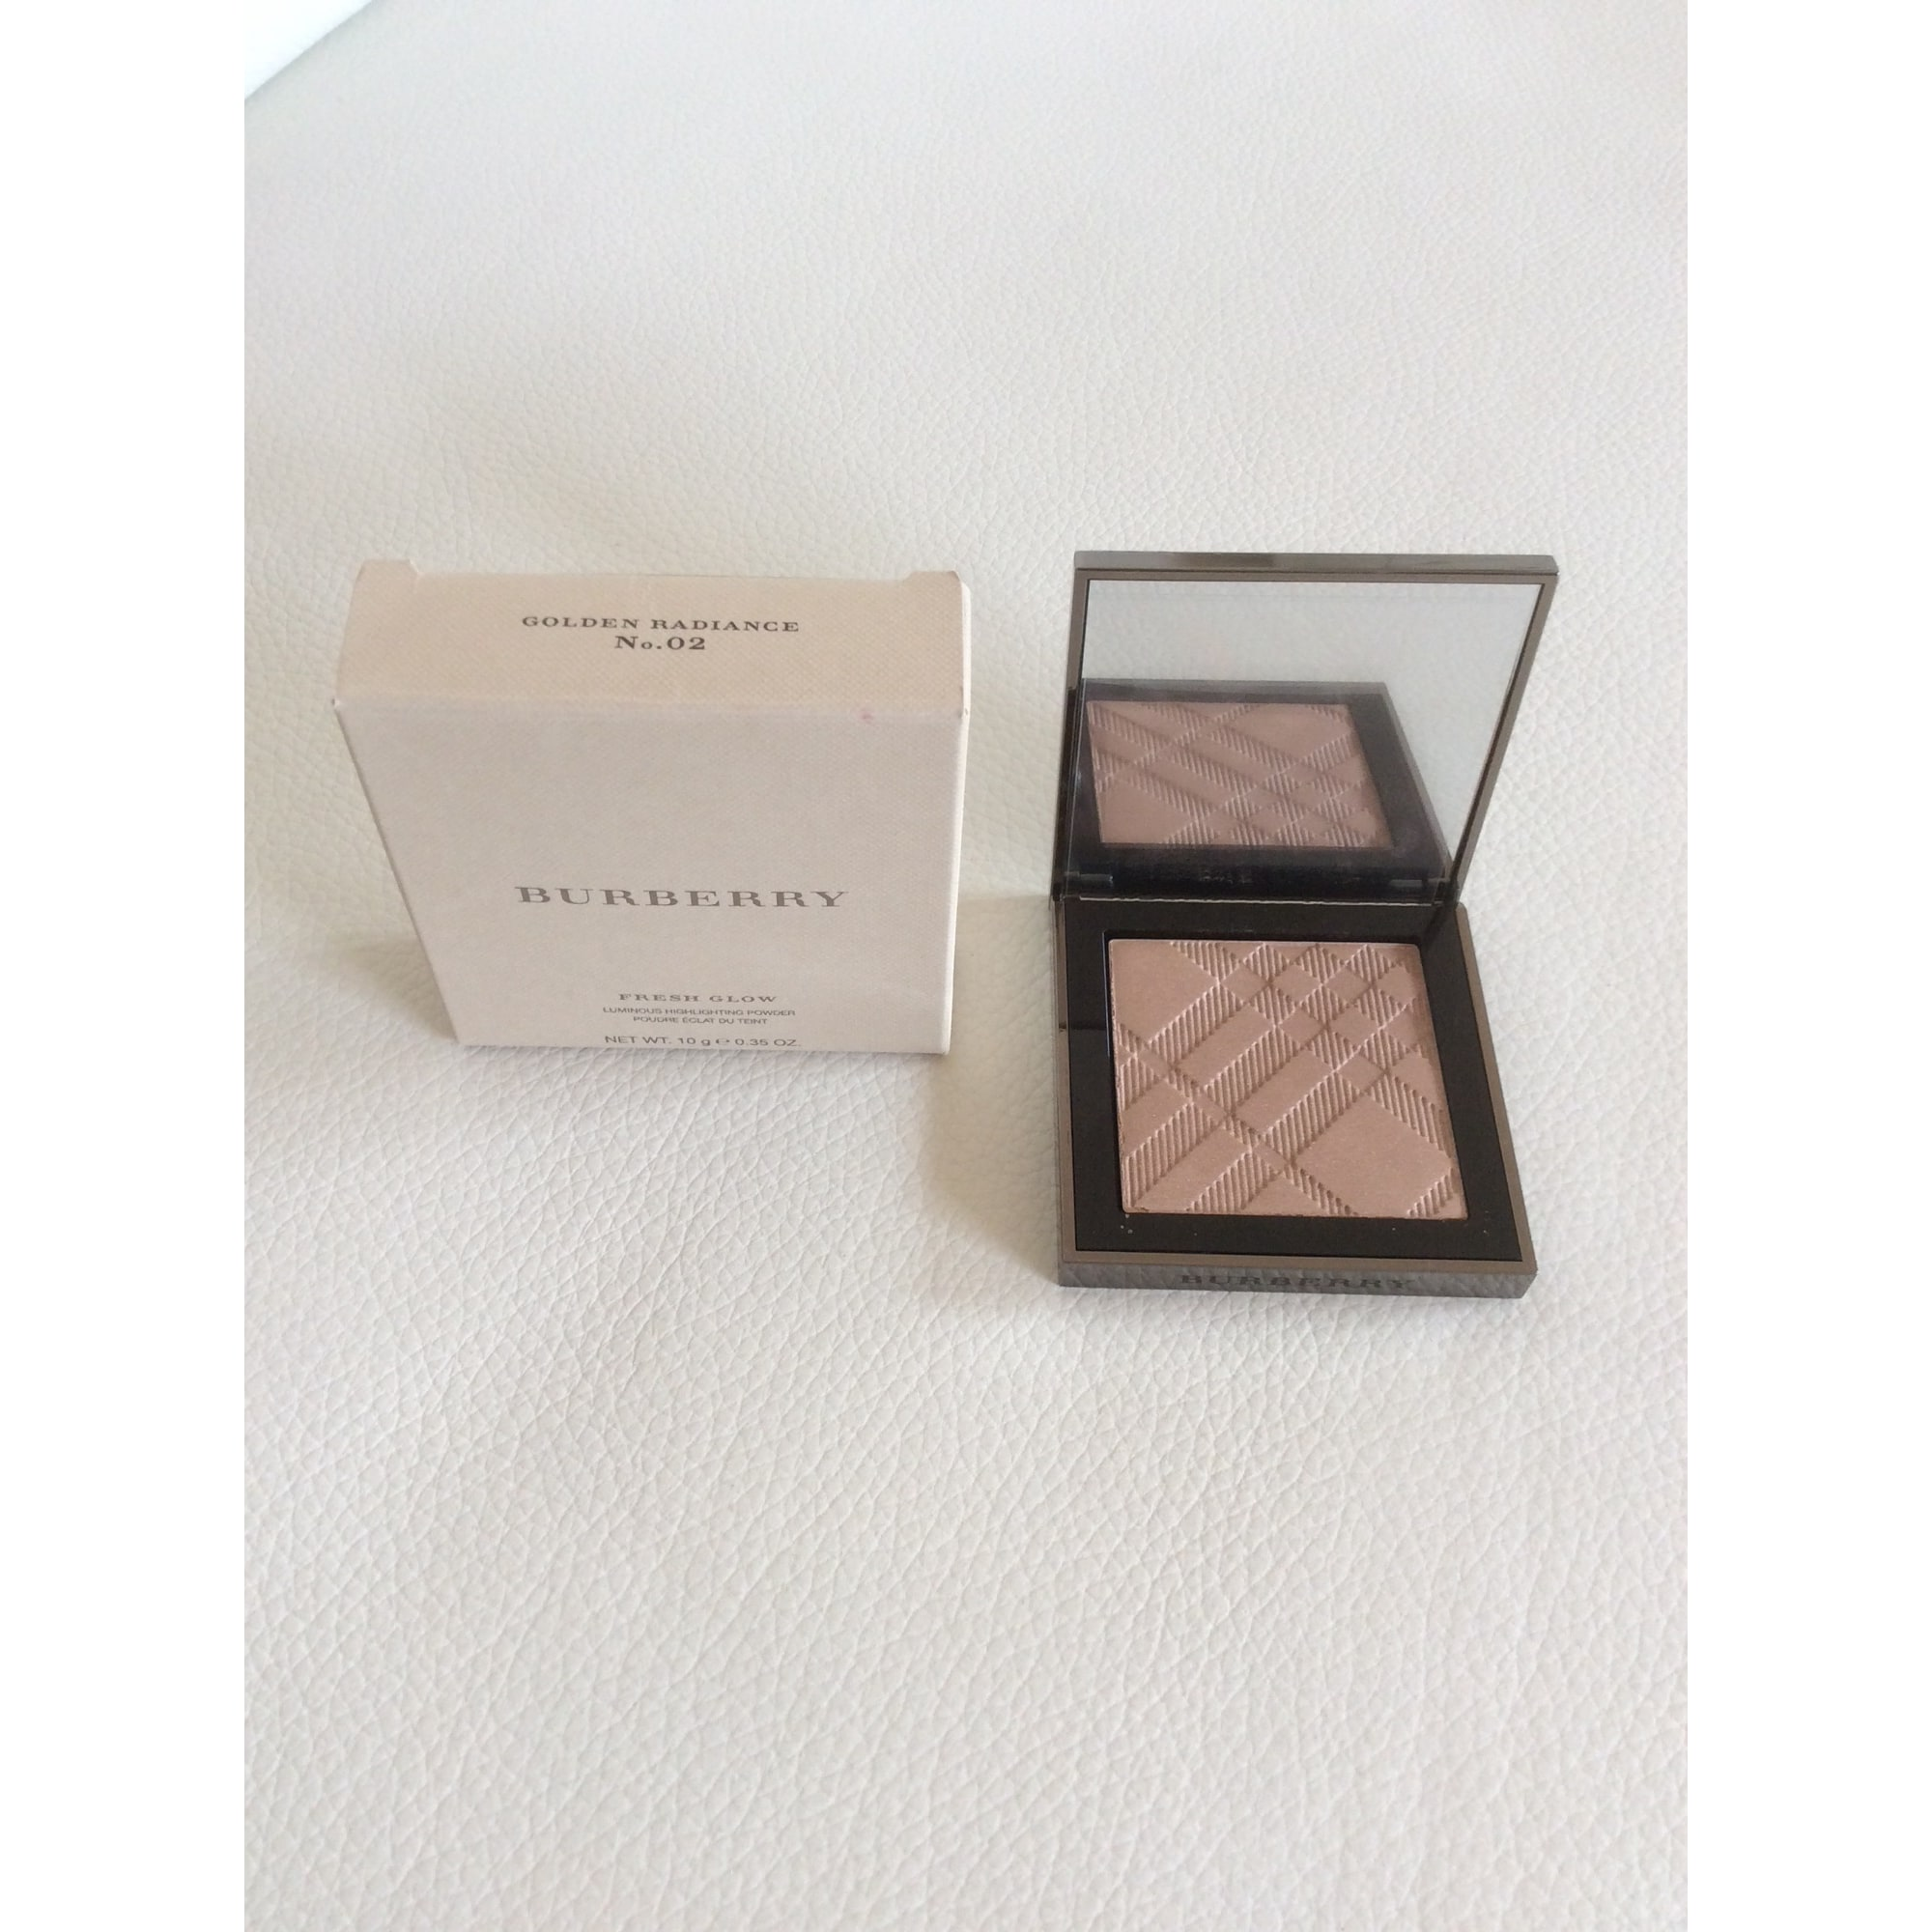 Poudre BURBERRY Golden radiance